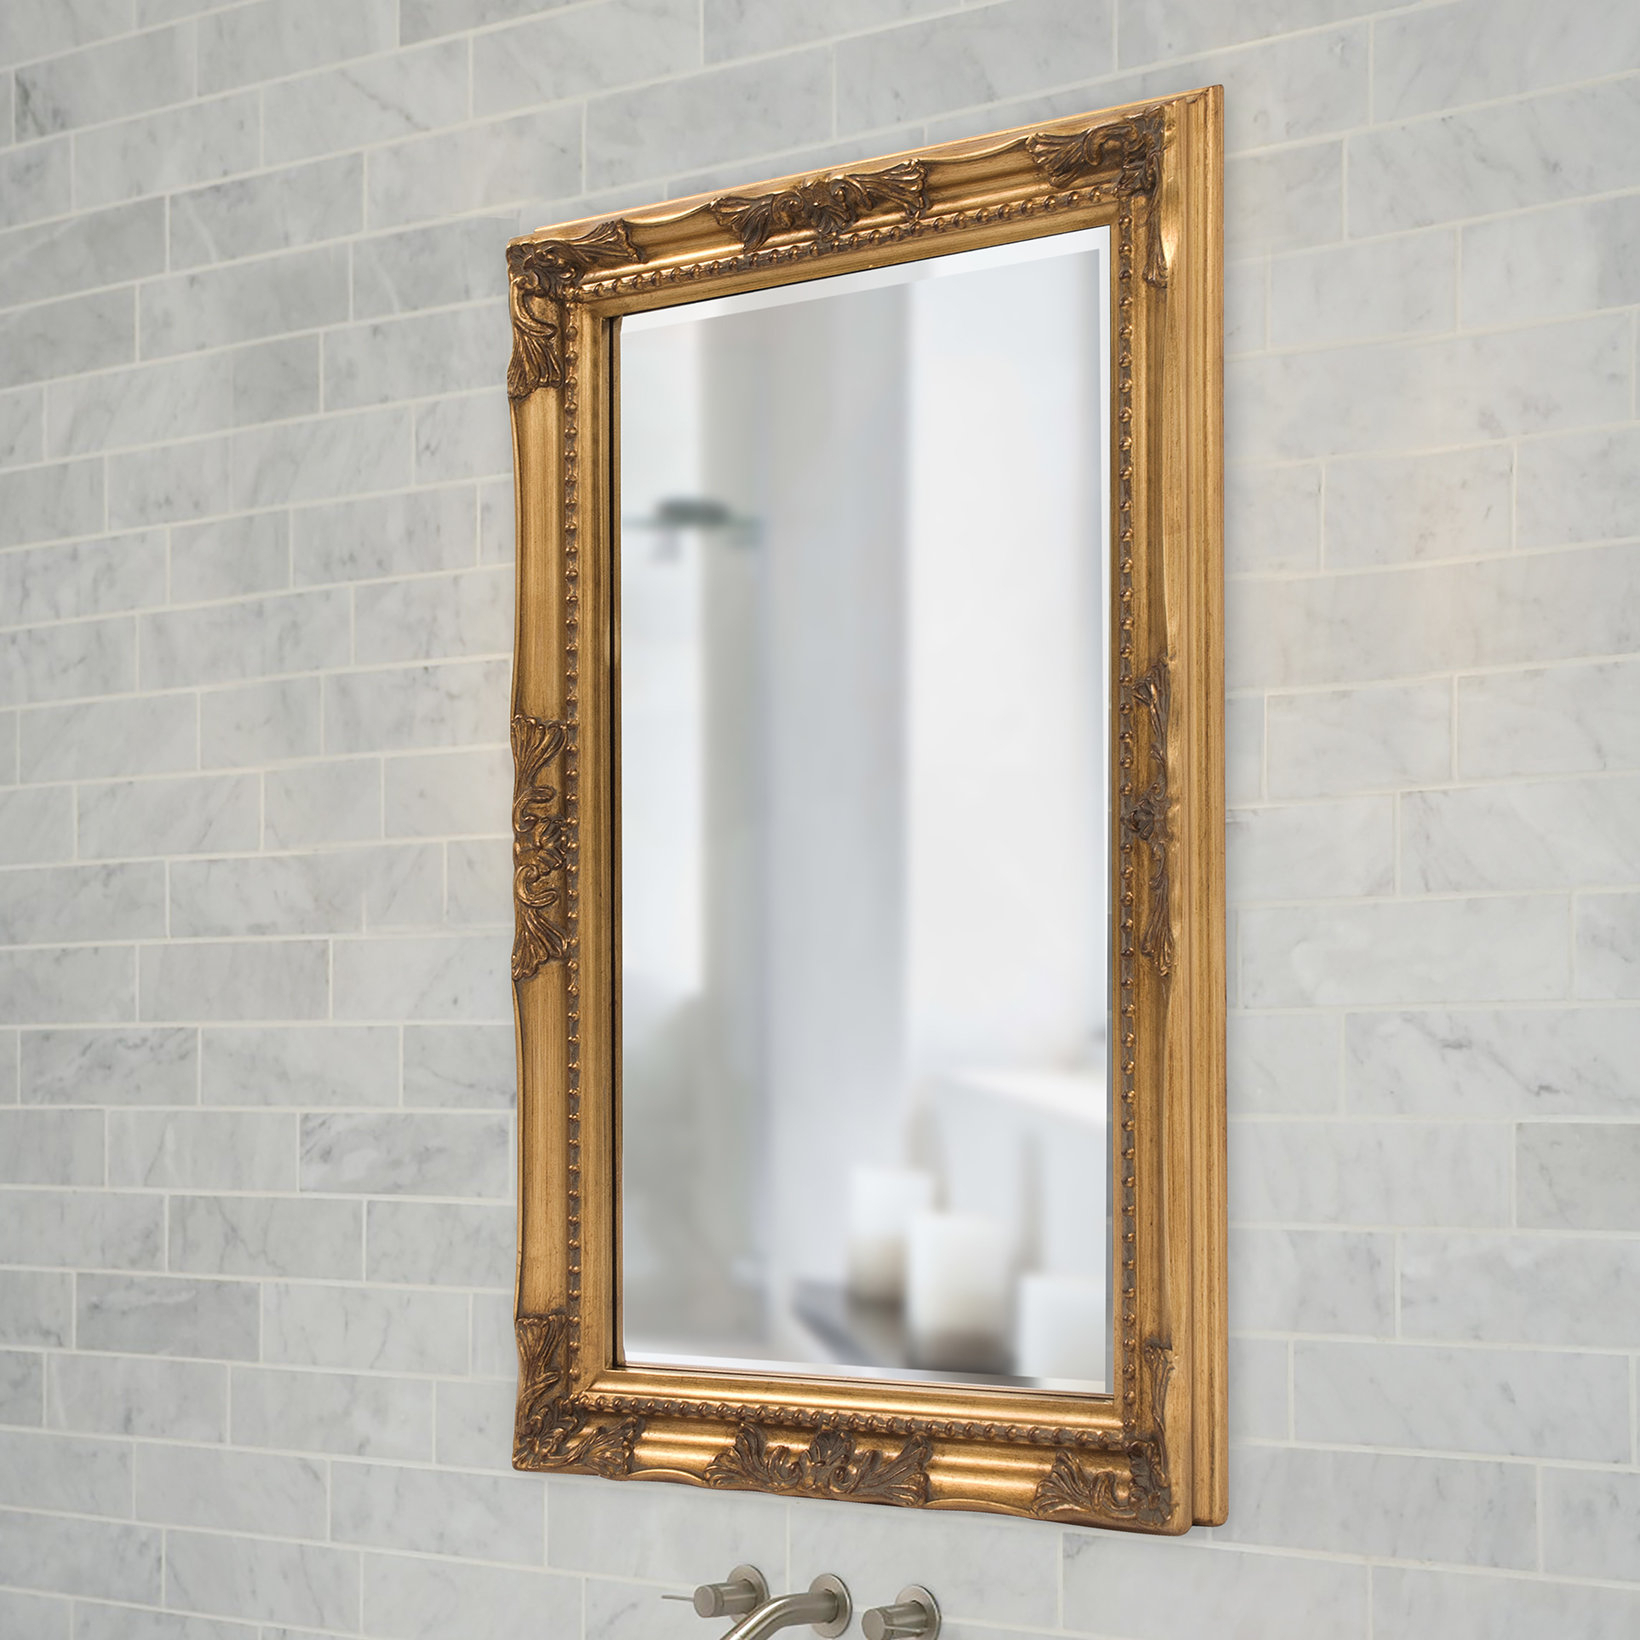 84 Inch Beveled Mirror (View 3 of 20)